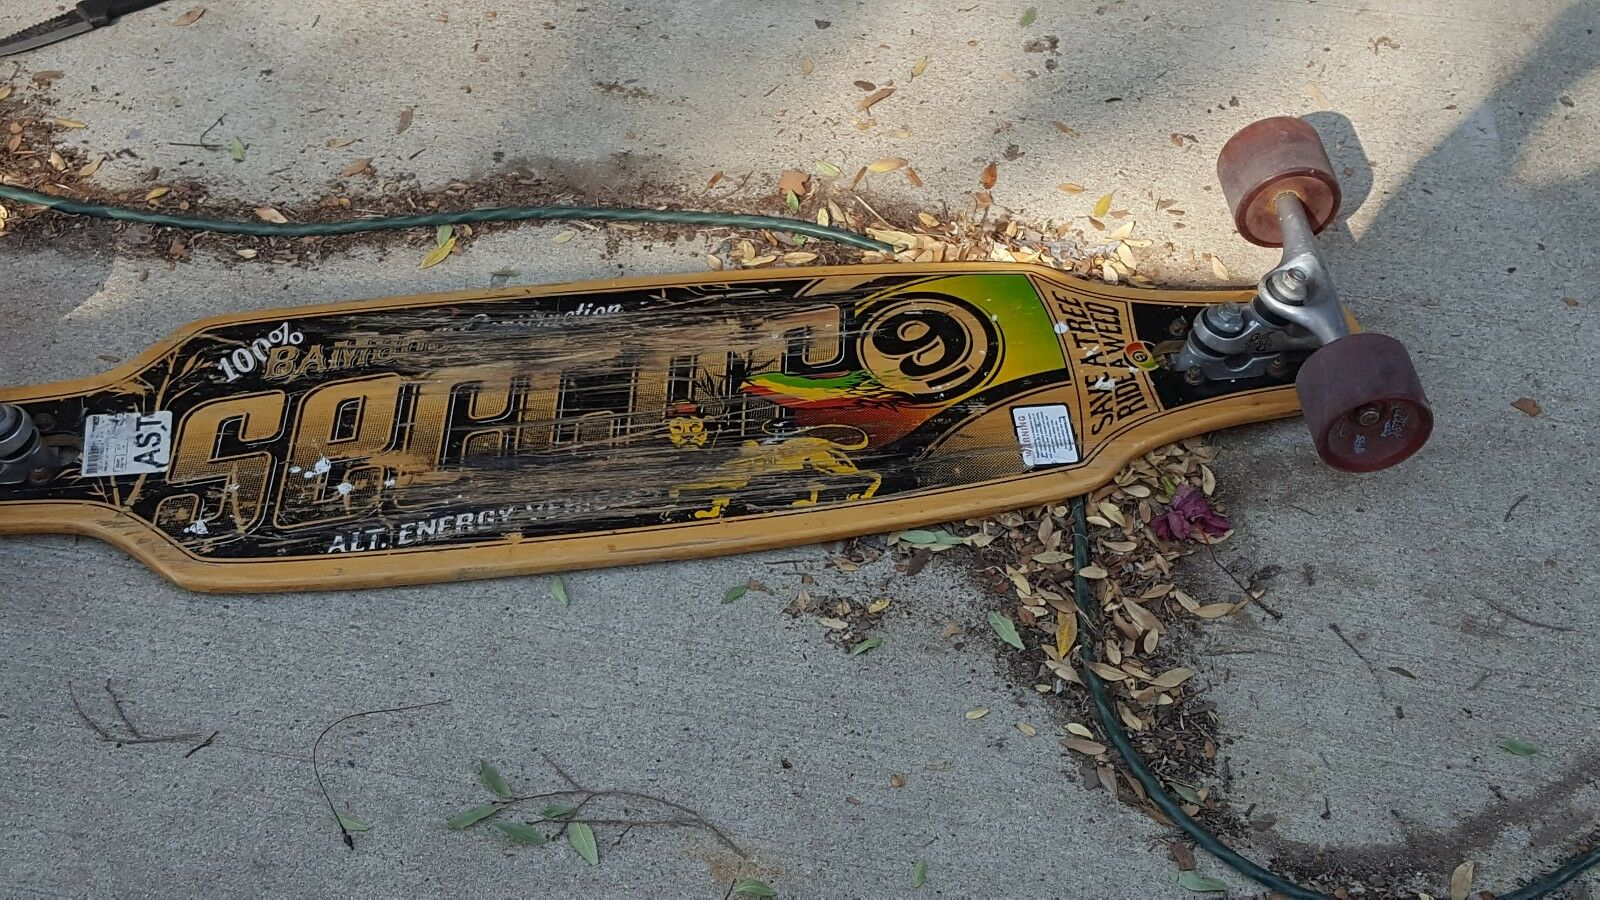 Used sector 9 Longboard with suspension. Used but still in great shape.